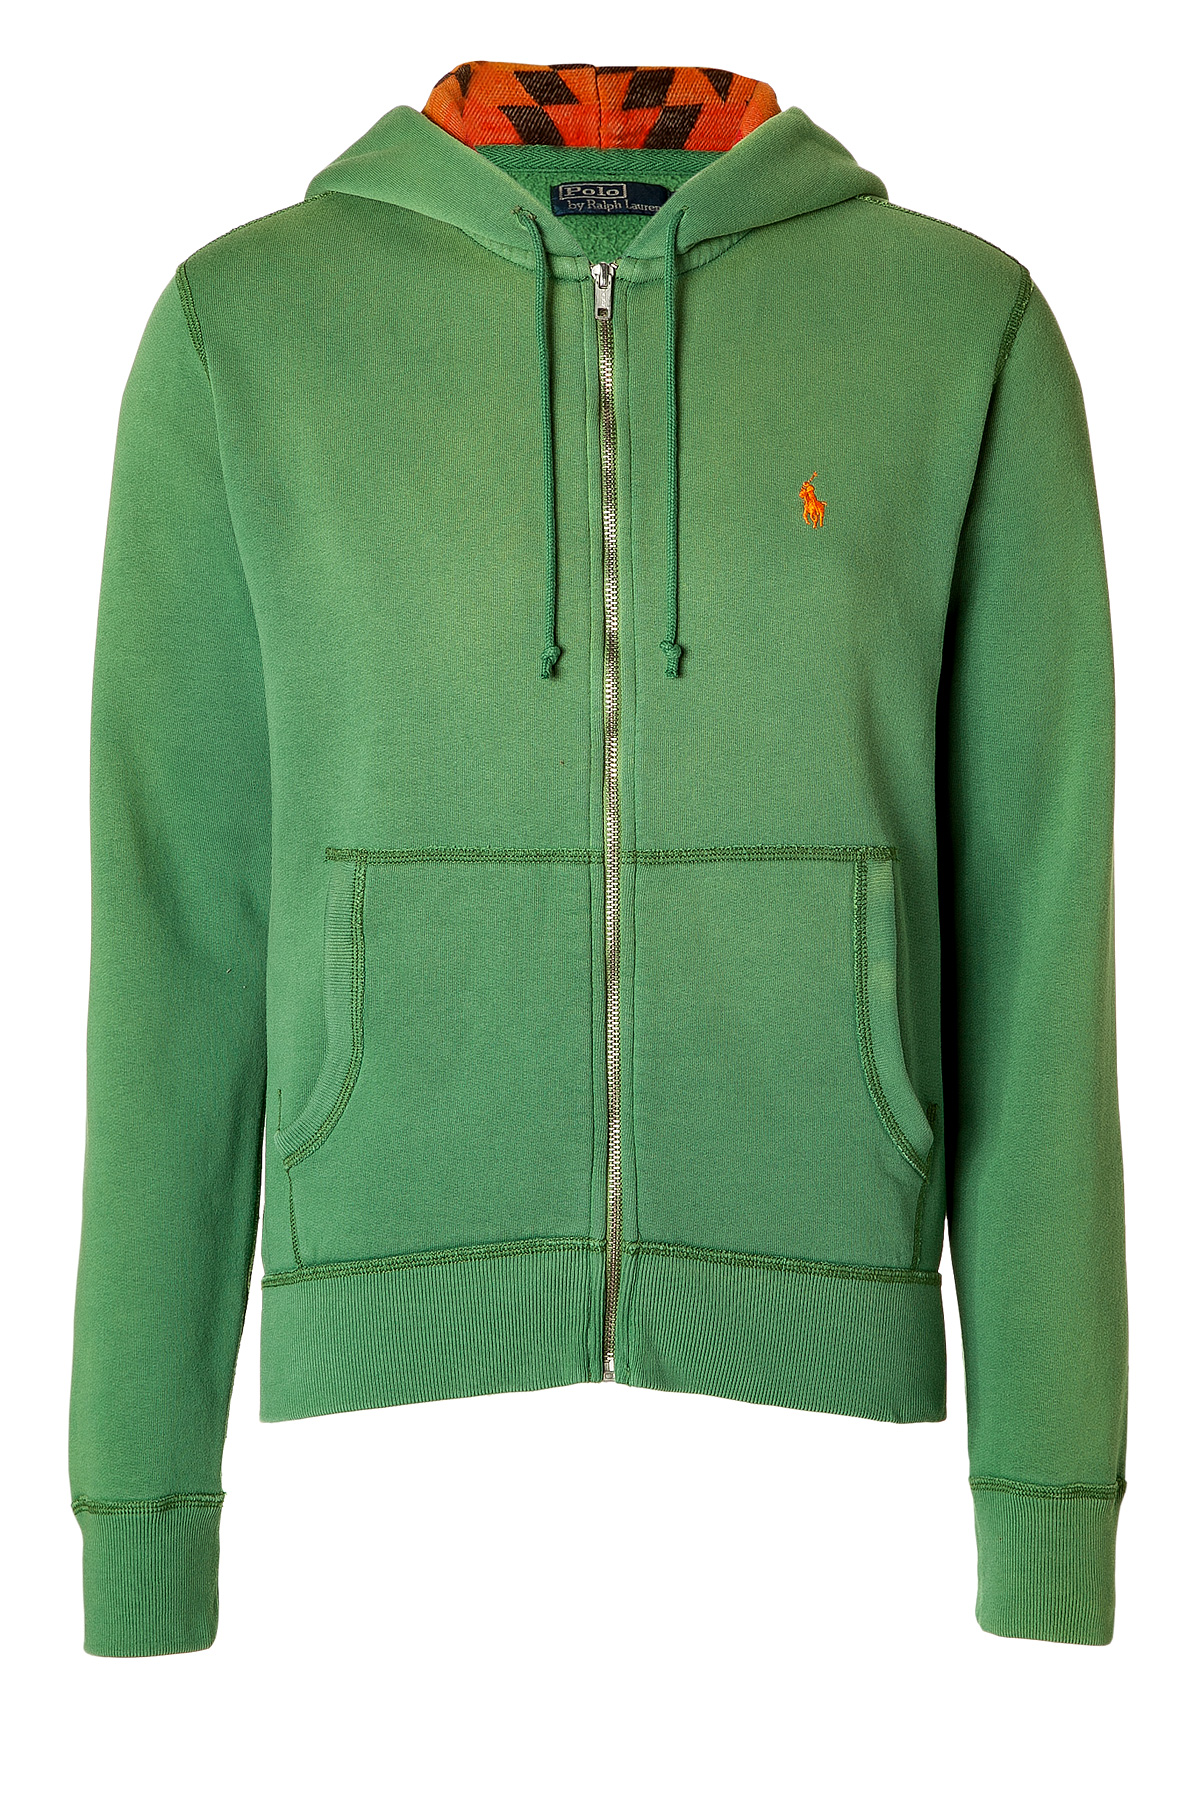 polo ralph lauren pasture green fleece detailed cotton hoodie in green for men lyst. Black Bedroom Furniture Sets. Home Design Ideas